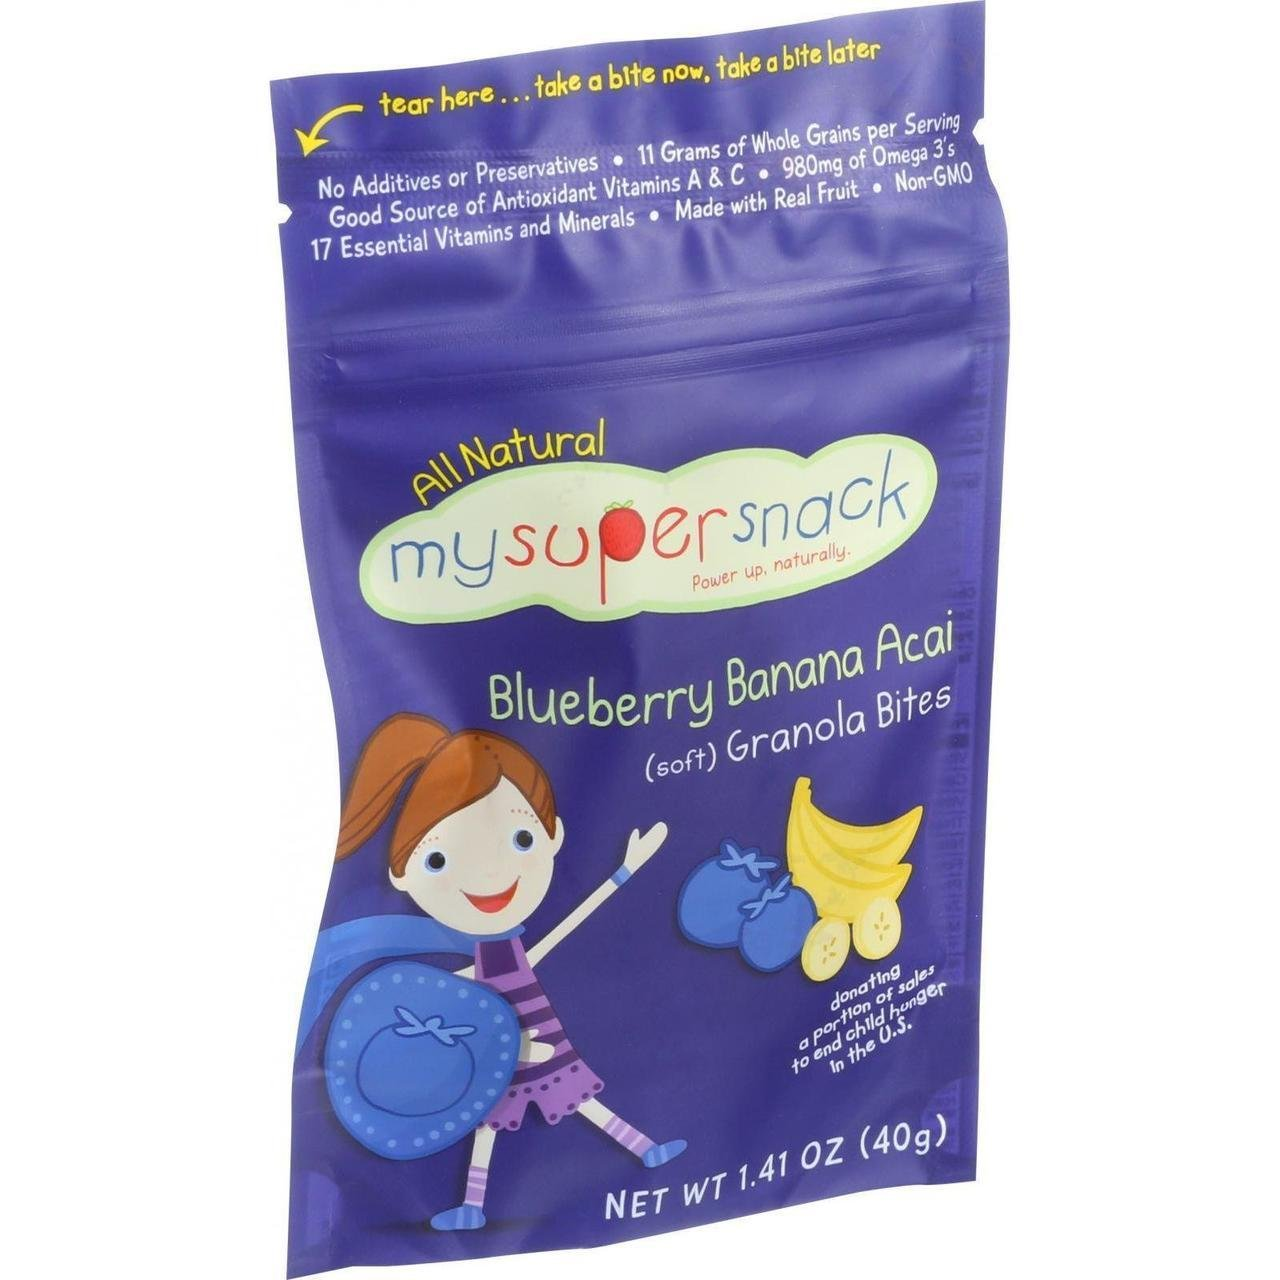 Mysupersnack Soft Granola Bites Blueberry Banana Acai 1.41 Oz Case Of 6 by Mysupersnack (Image #1)